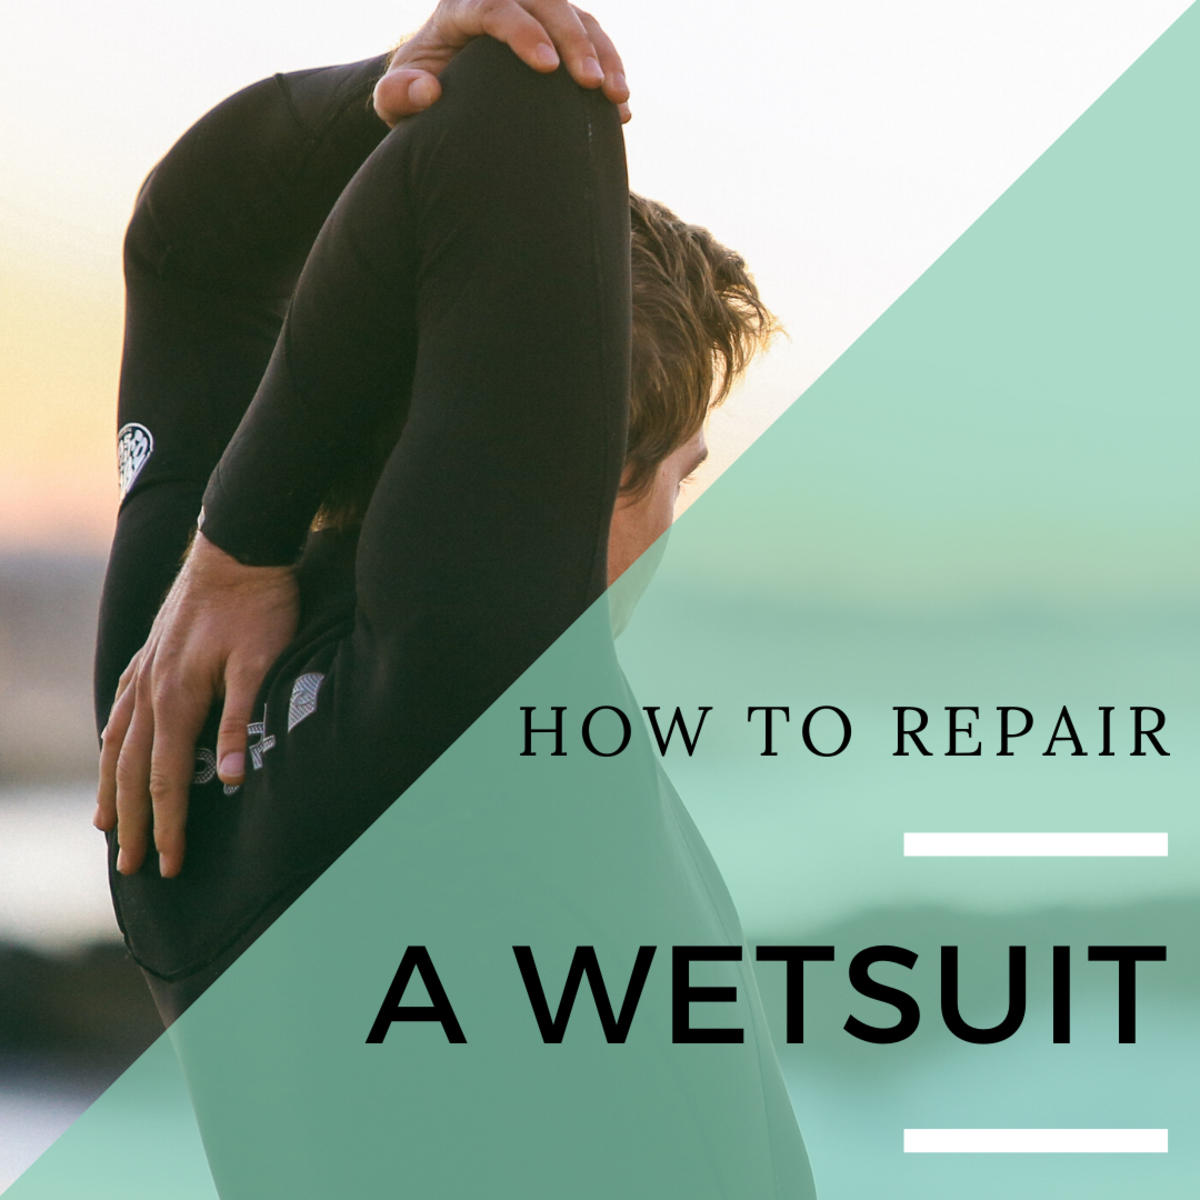 How to Repair a Wetsuit at Home